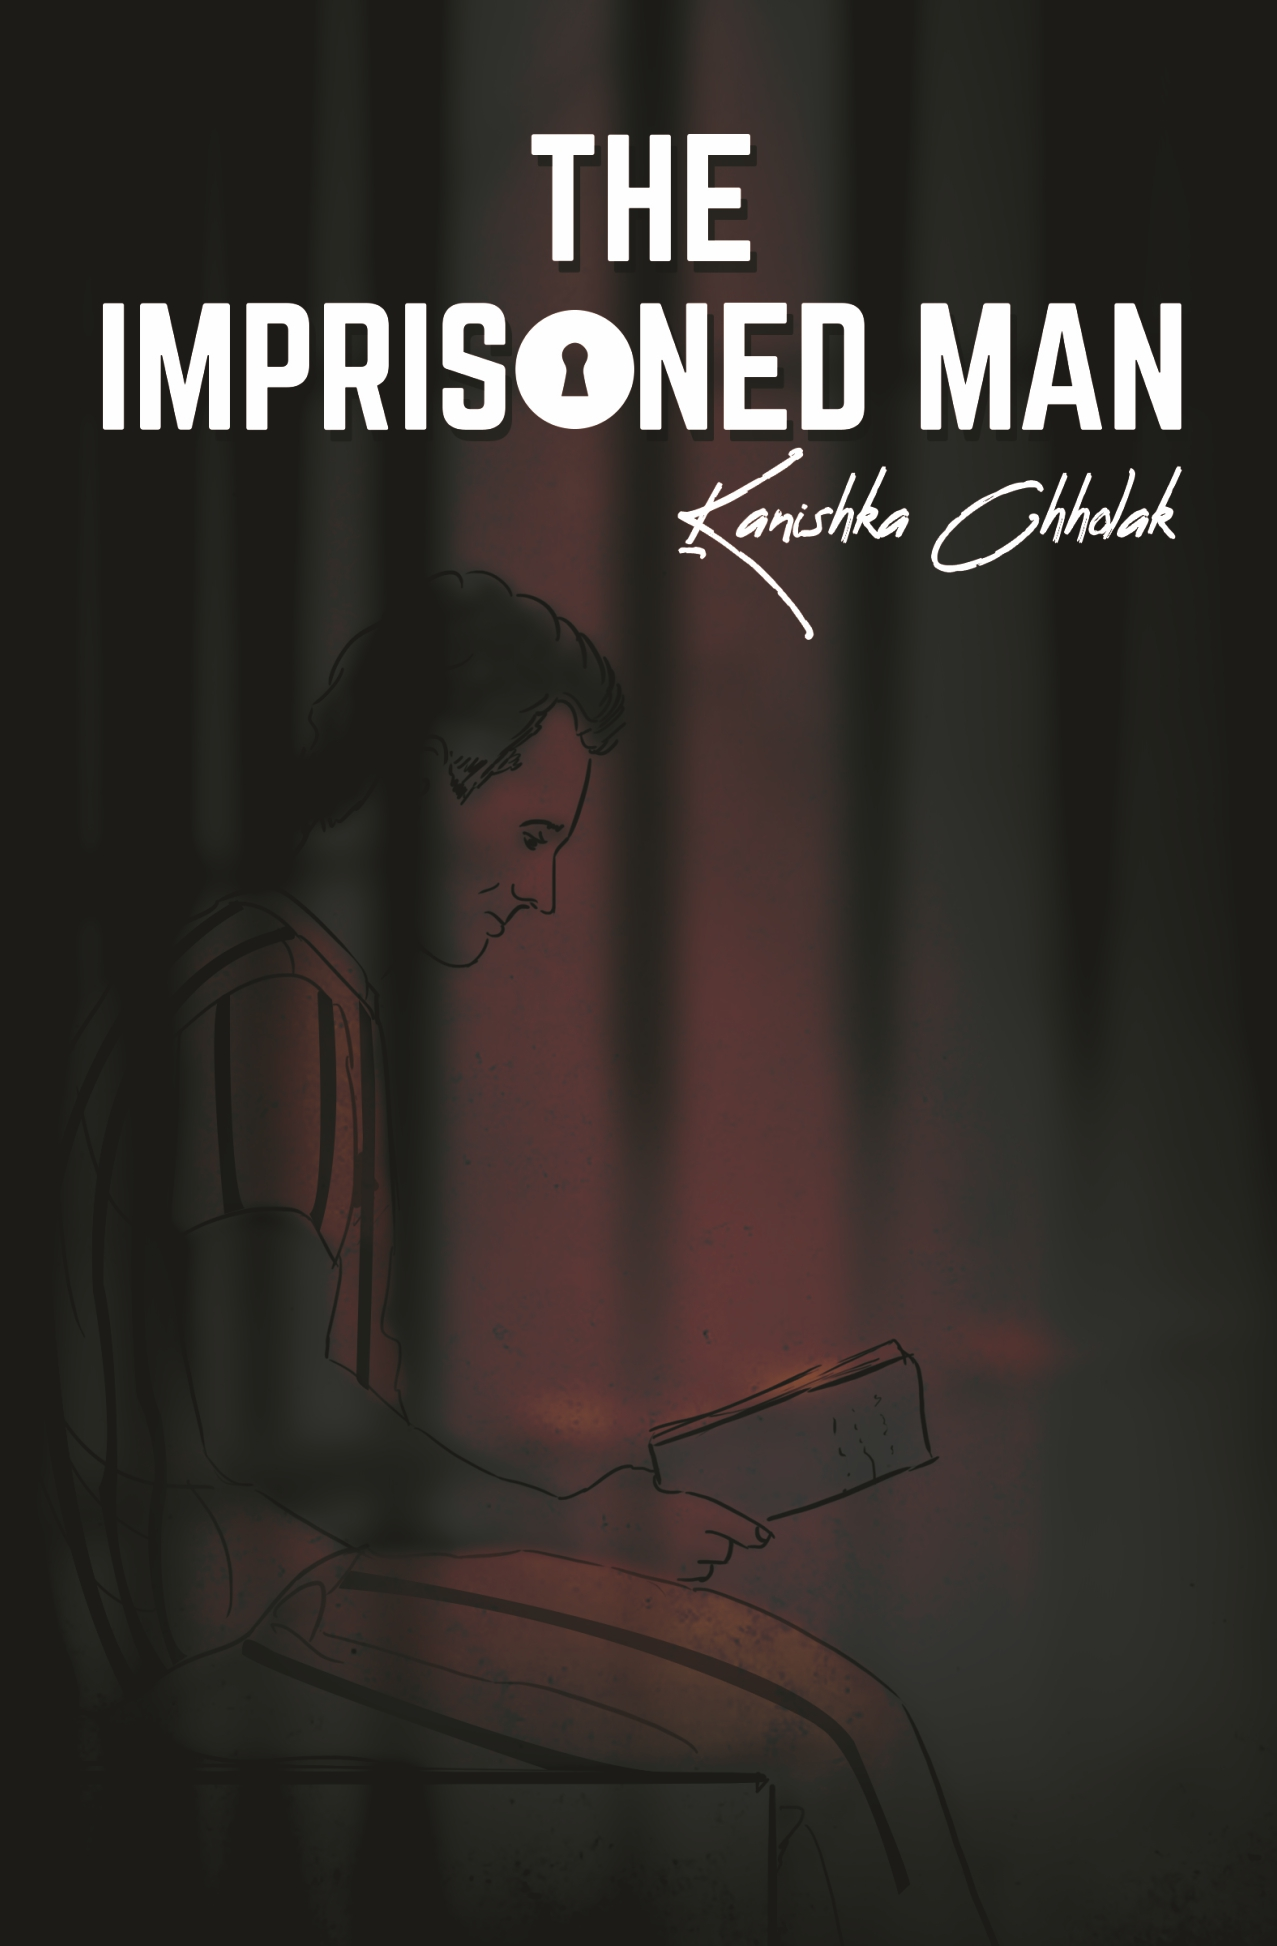 The Imprisoned Man